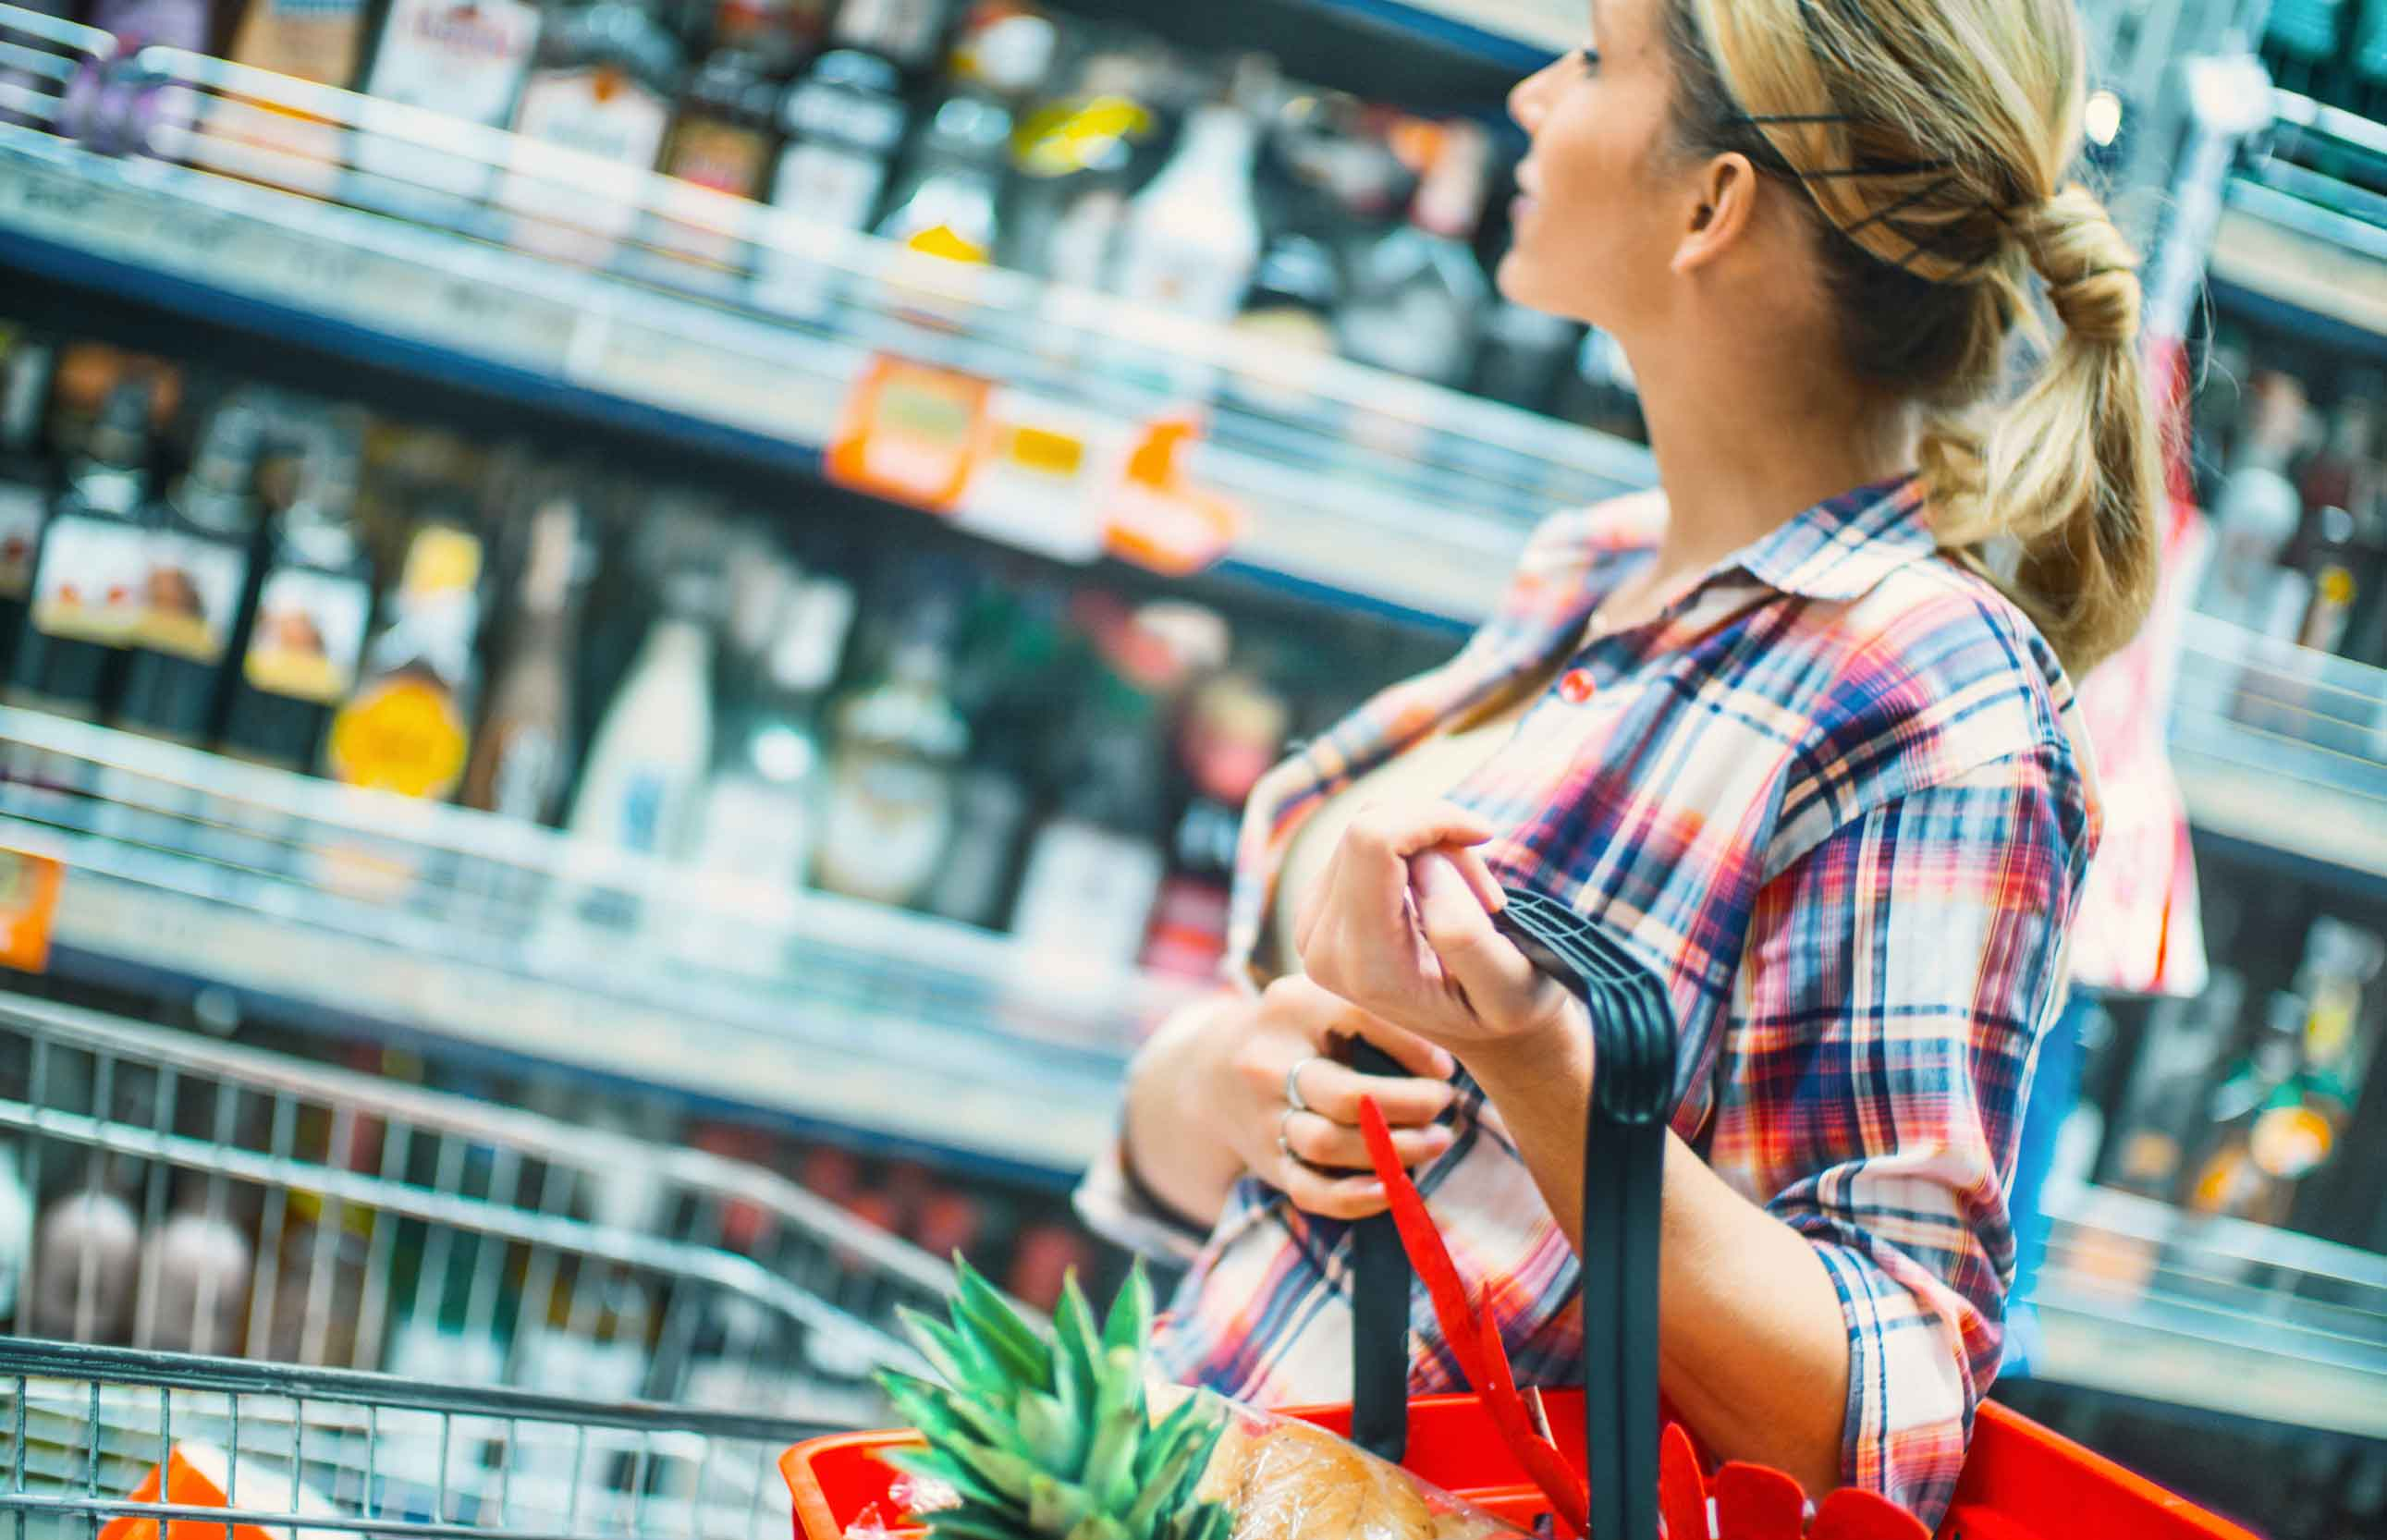 The Best Things To Buy At The Grocery Store In June